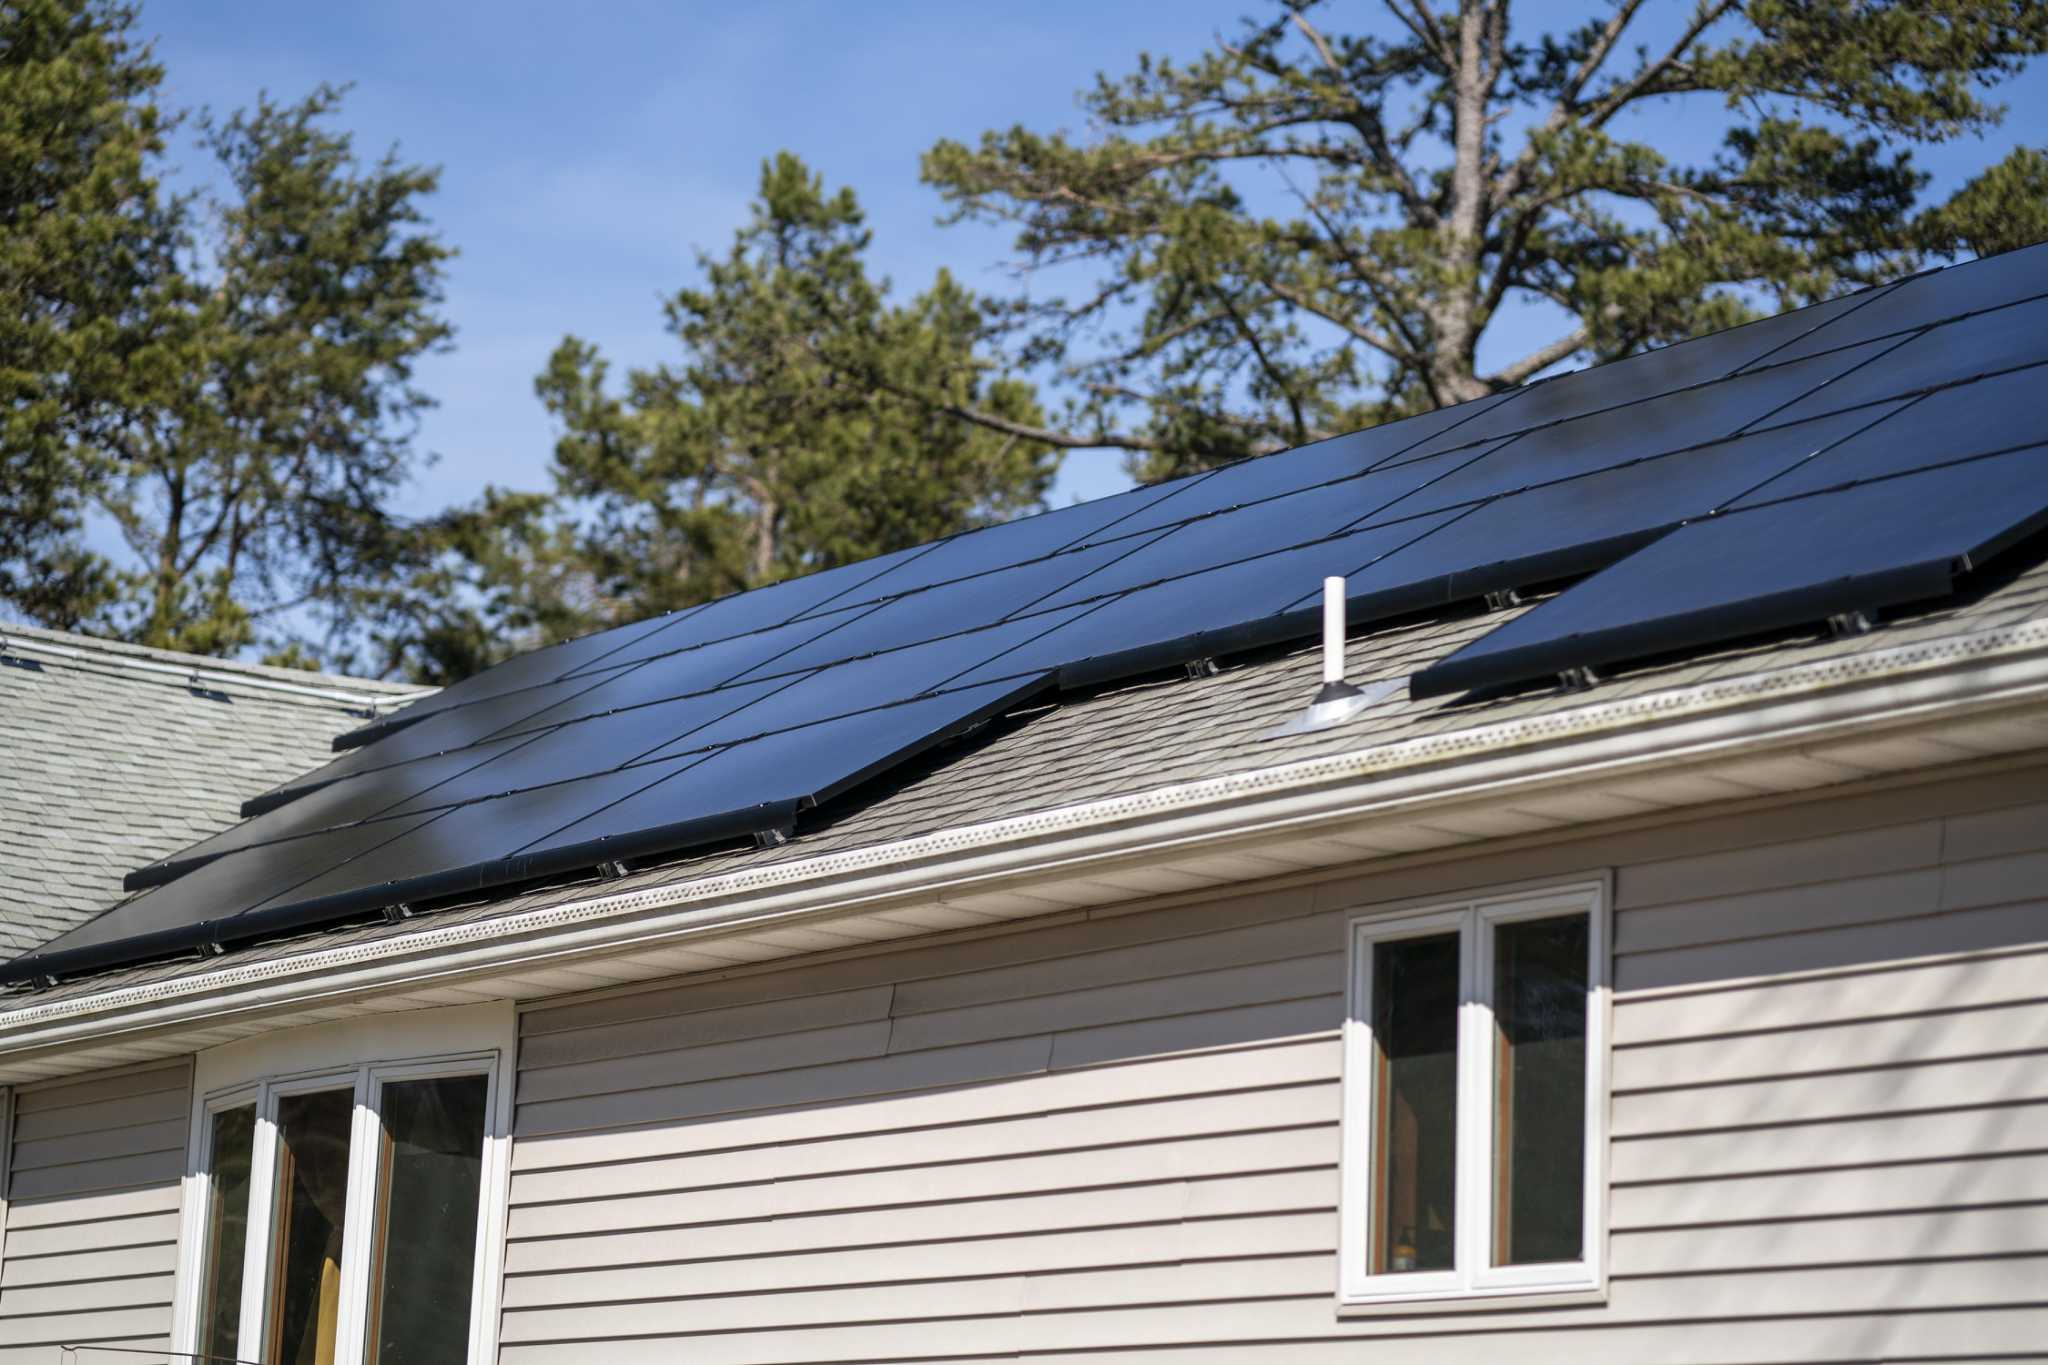 Rooftop Solar Panels Reaching Saturation Point Study